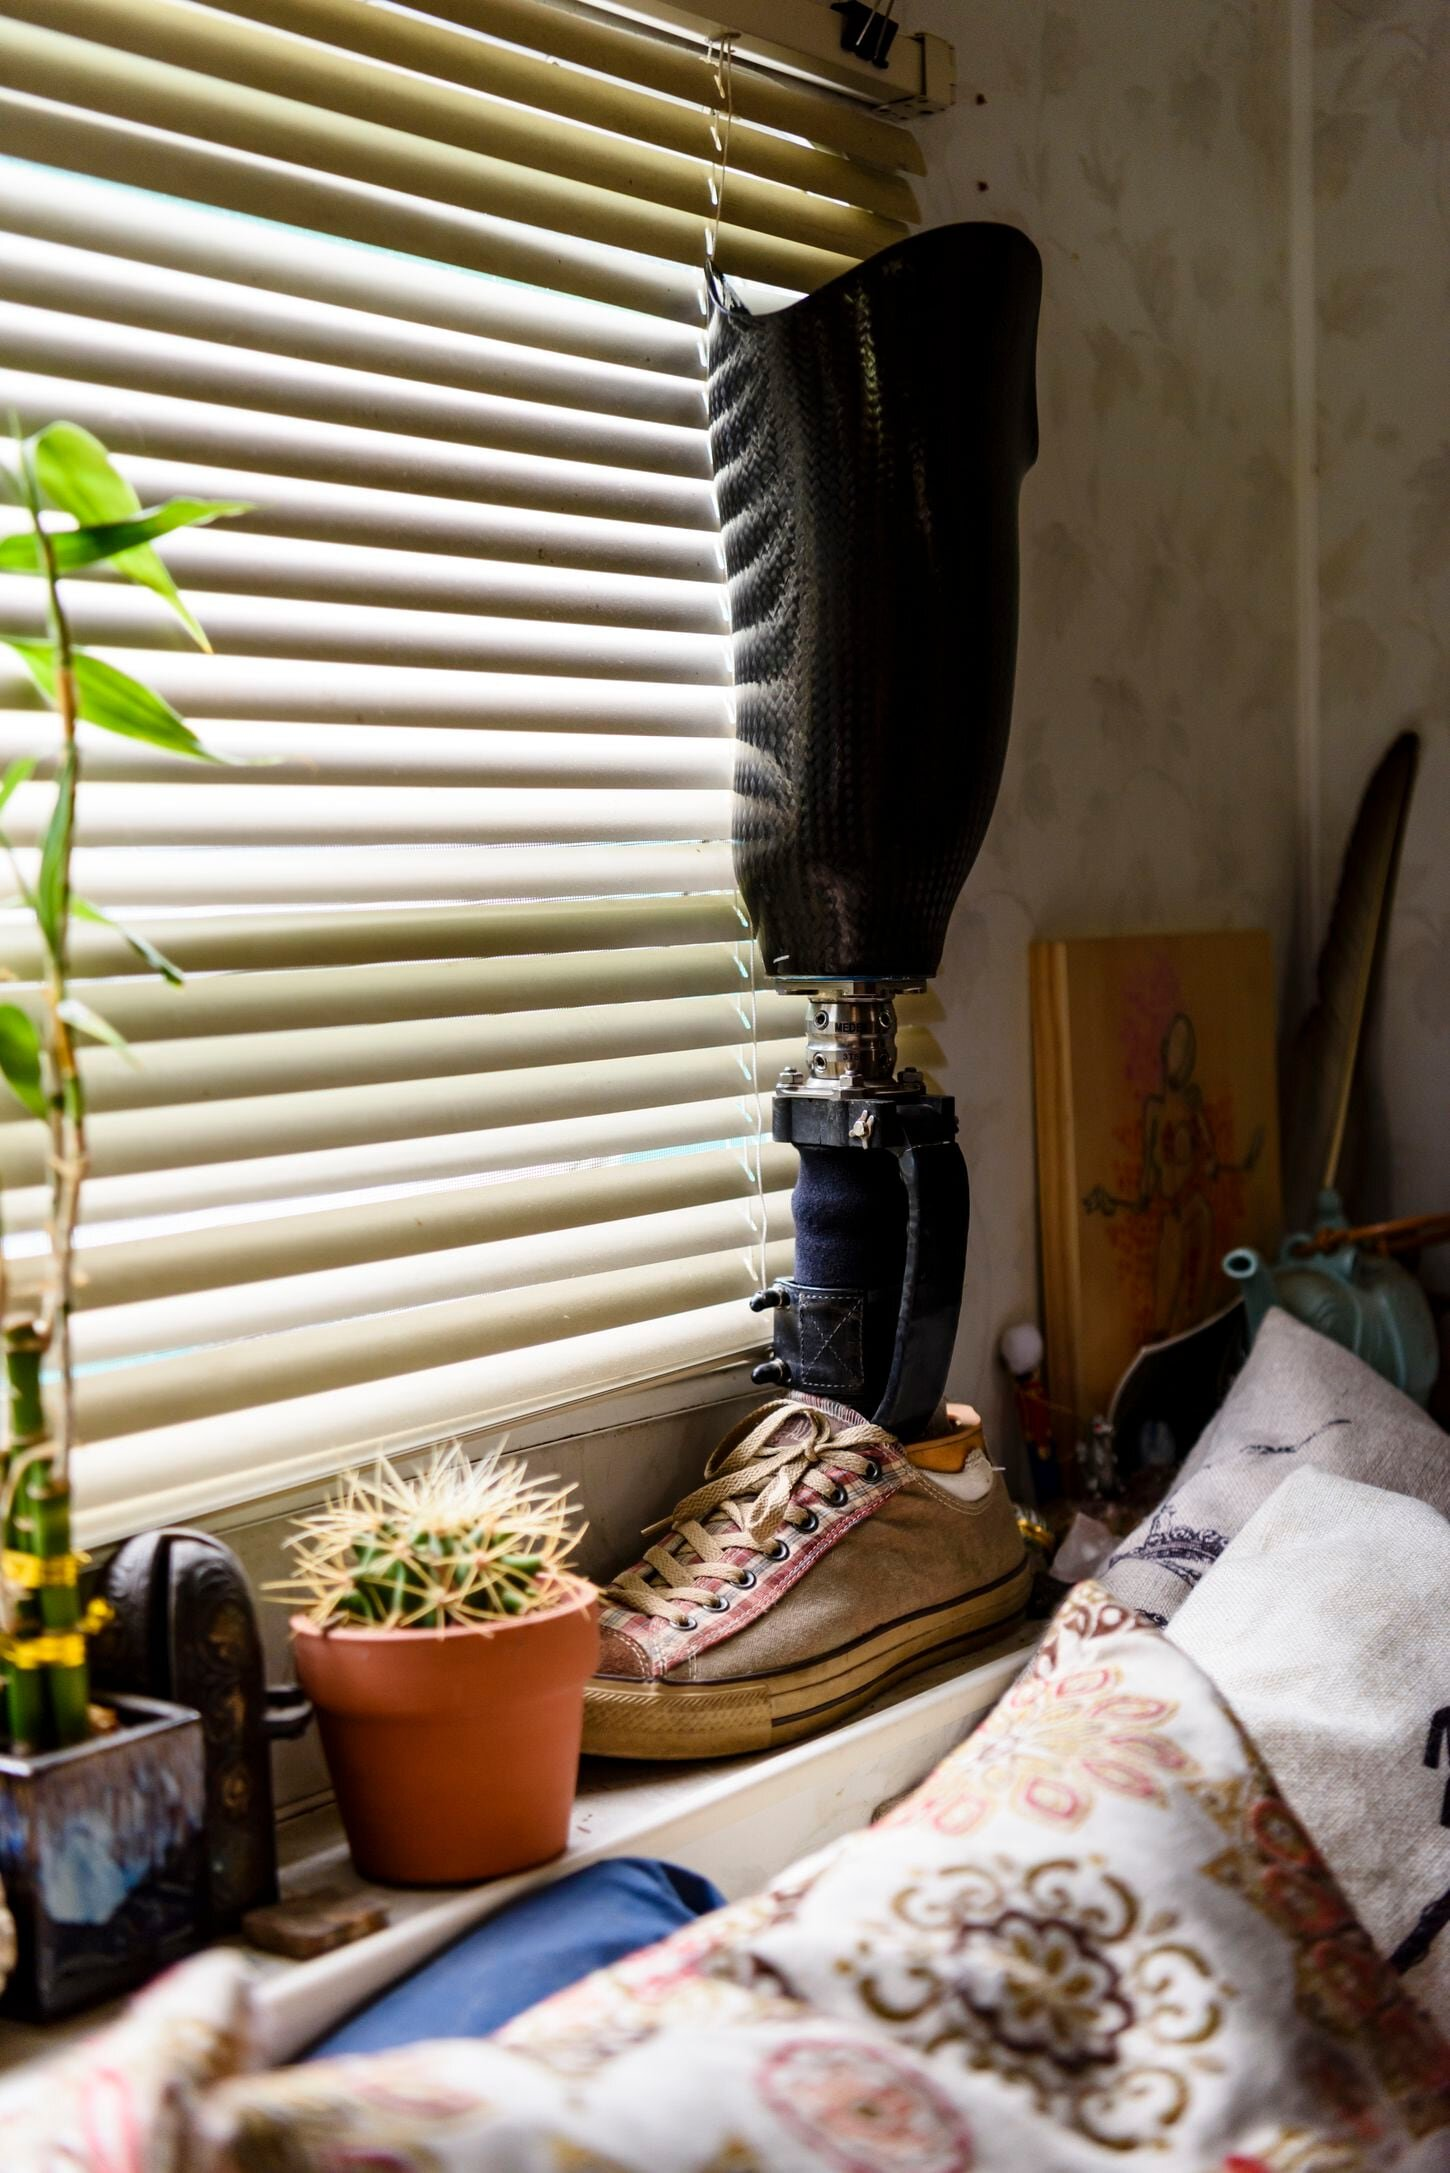 At her home in Drain, Ore., Karie Fugett displays the prosthetic leg that belonged to her husband, Cpl. Jimmy Cleveland Kinsey II, who was wounded in Iraq in 2006. (Photos by Leah Nash)